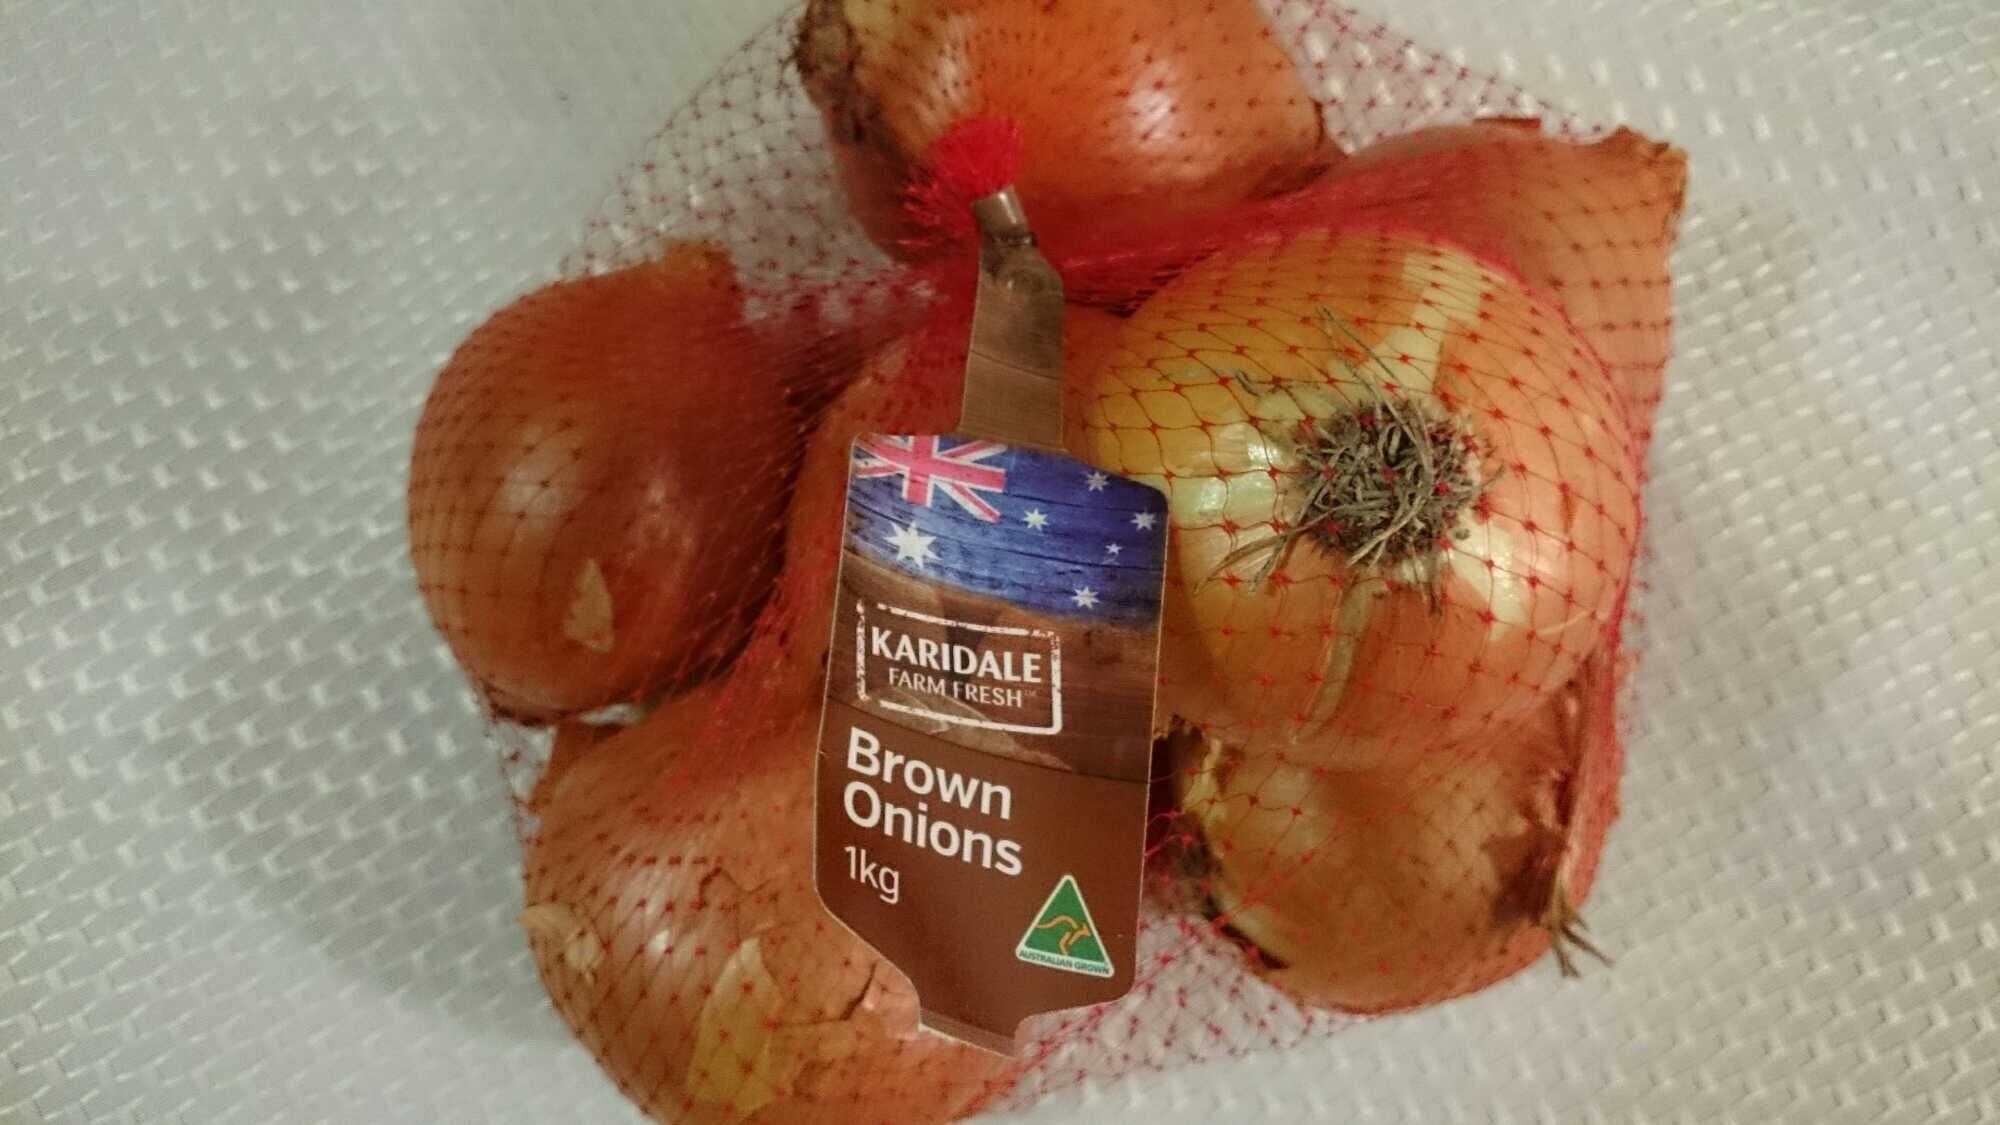 Brown Onions - Produit - en